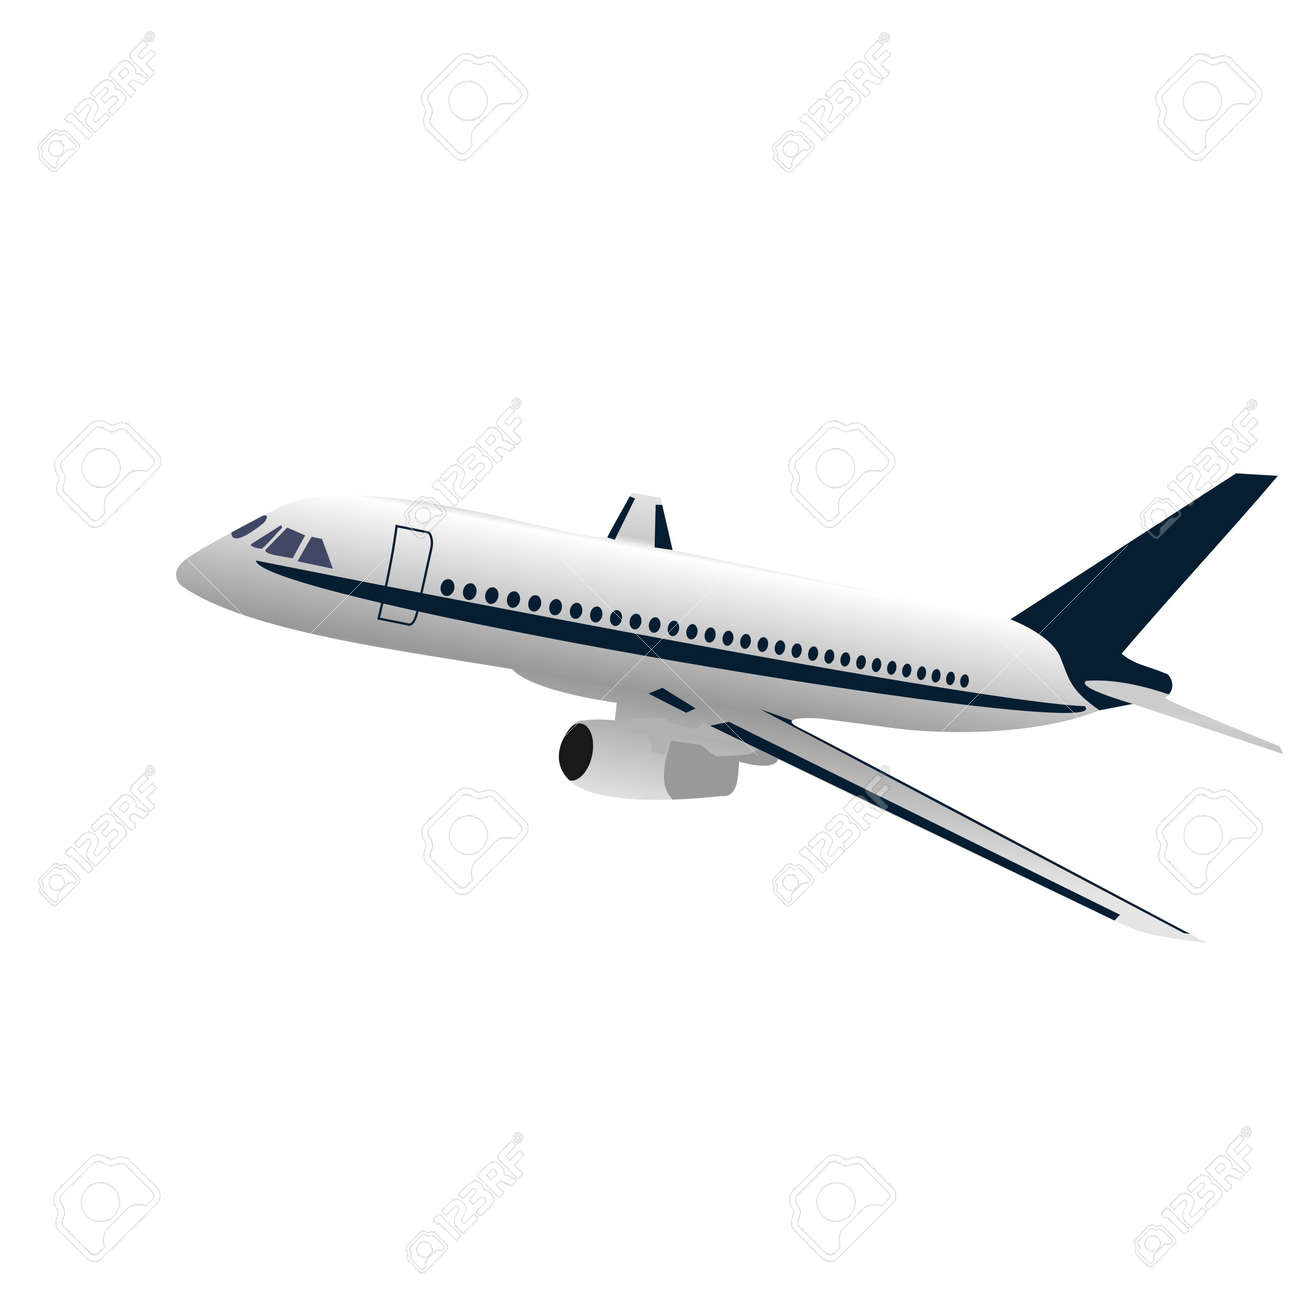 Realisic illustration airplane Stock Vector - 6778551